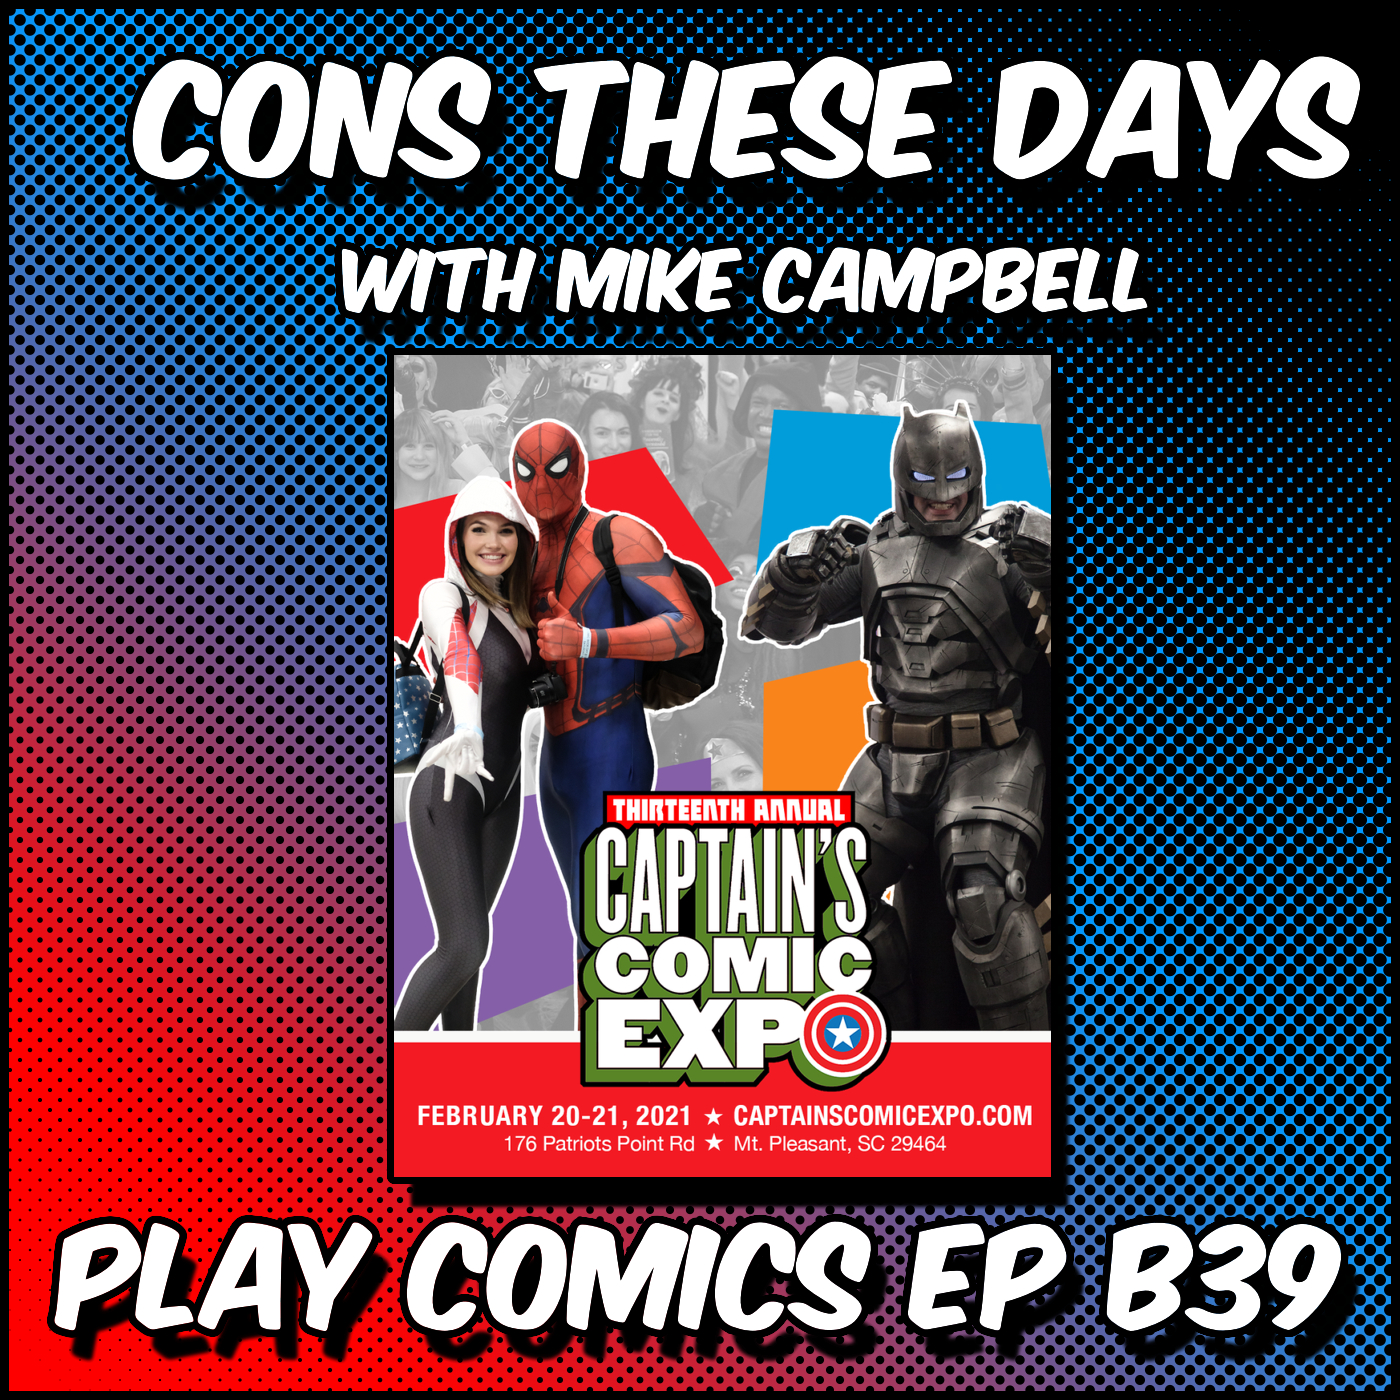 Cons These Days with Mike Campbell